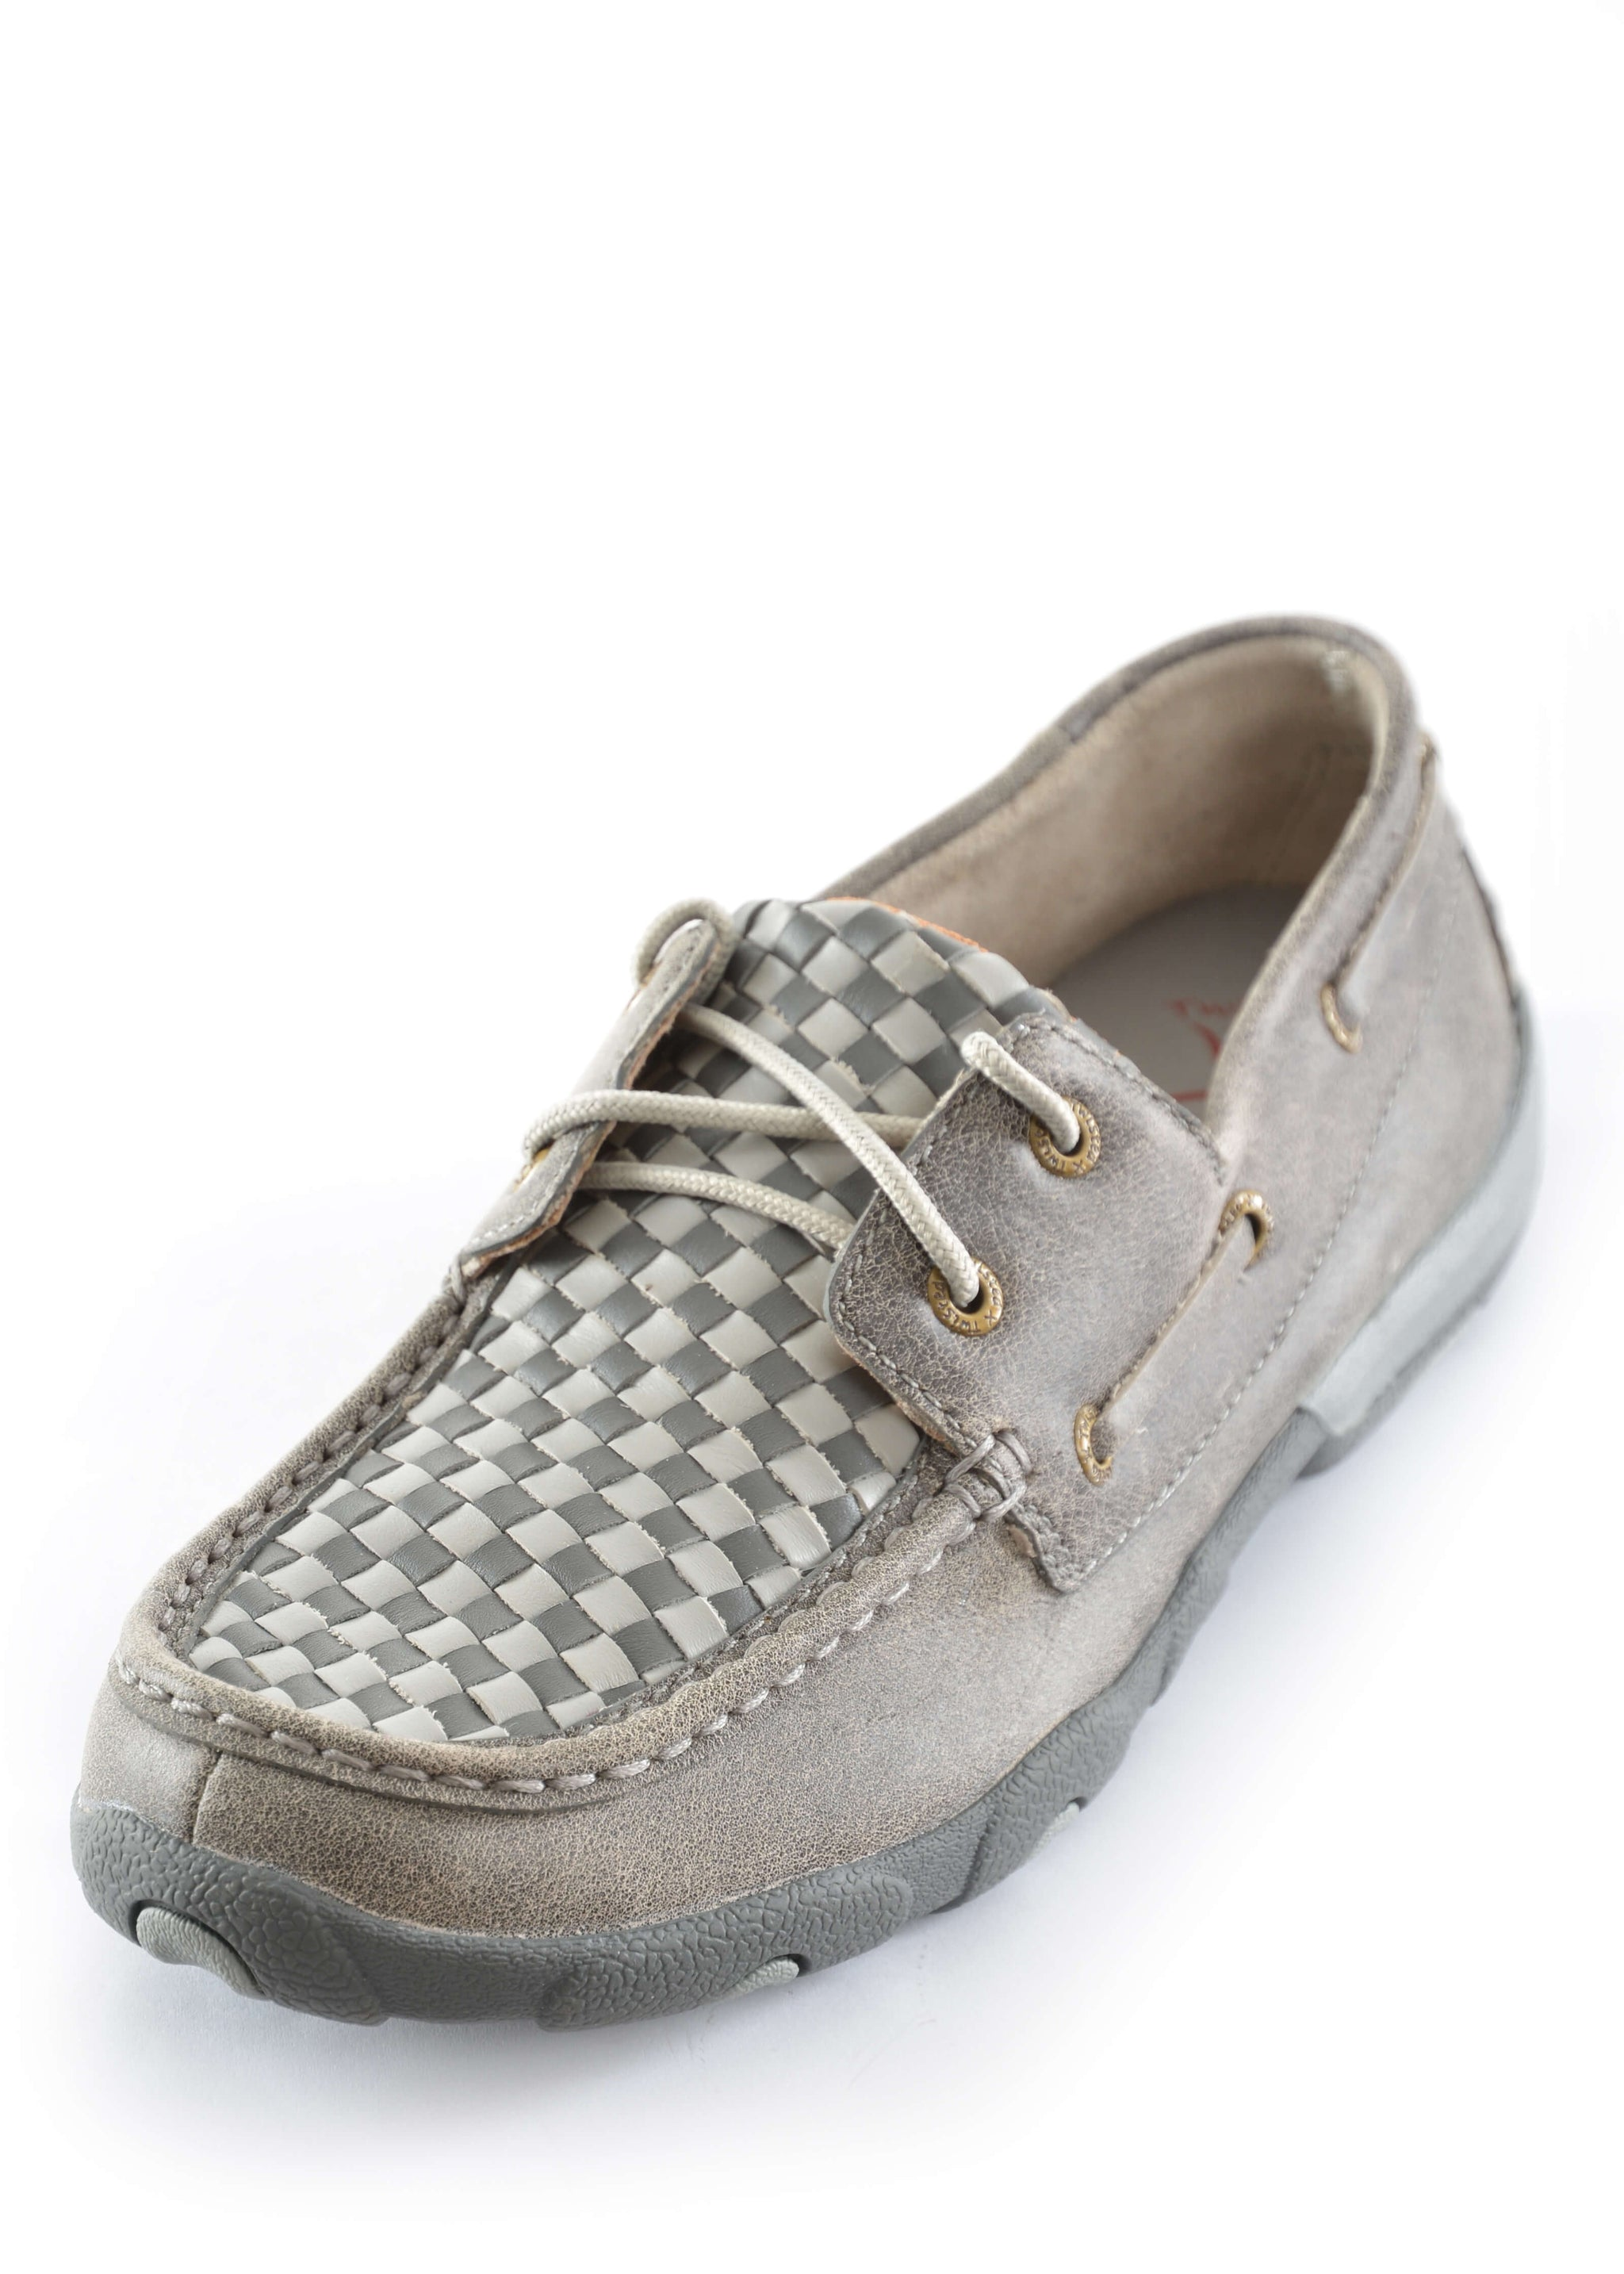 6aeeaacb344 Women's Twisted X Casual Driving Moc Low Lace Up